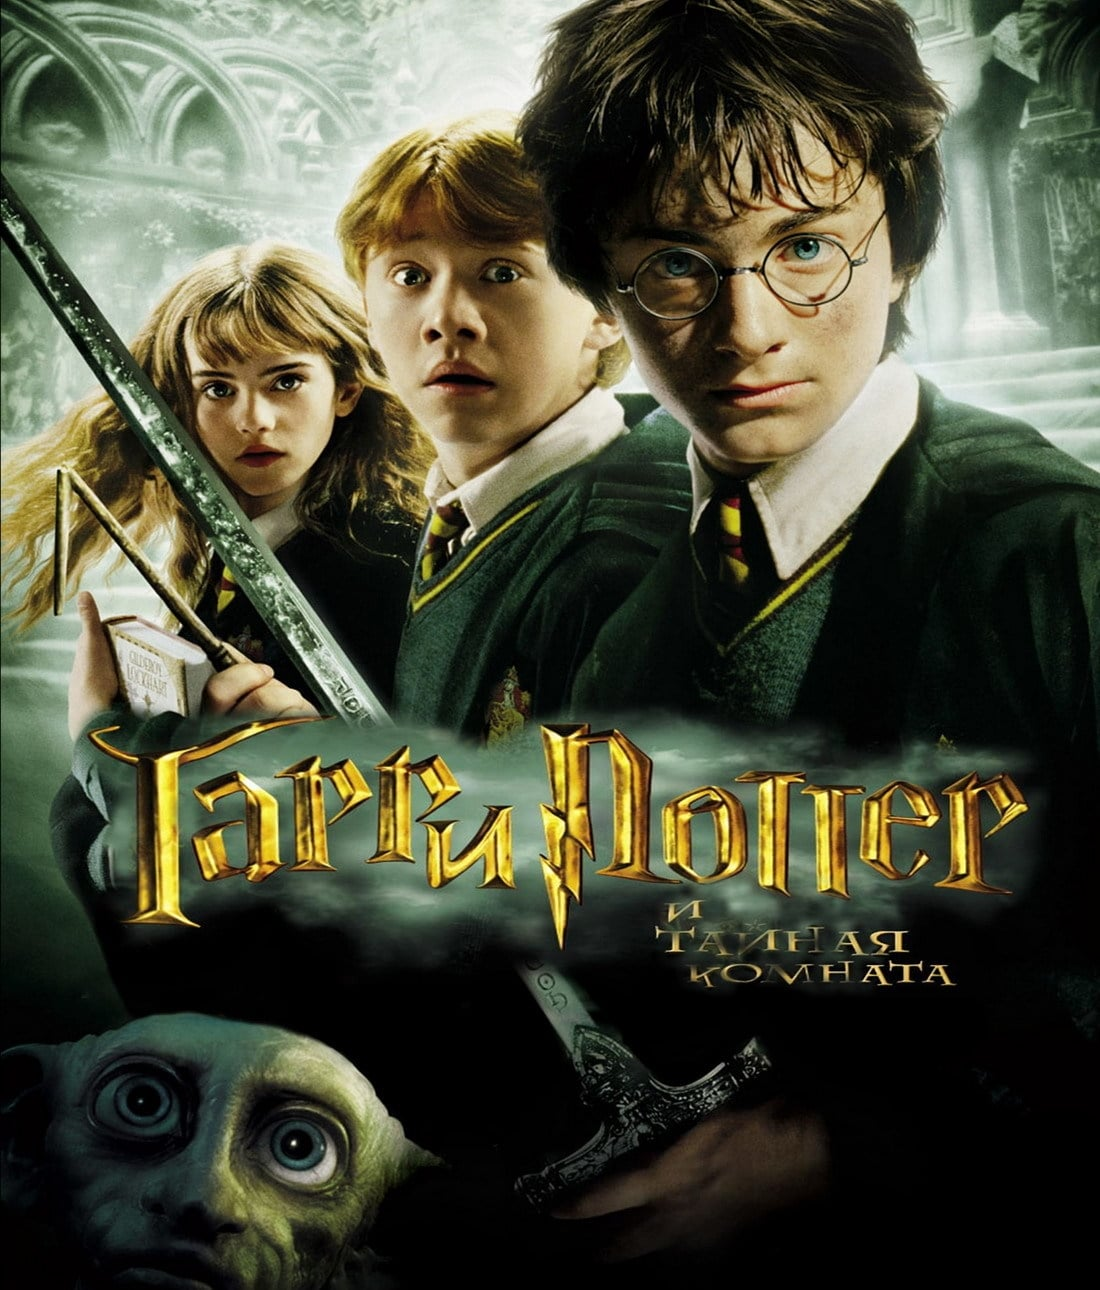 Harry potter and the chamber of secrets 2002 movies - Harry potter chambre secrets streaming ...